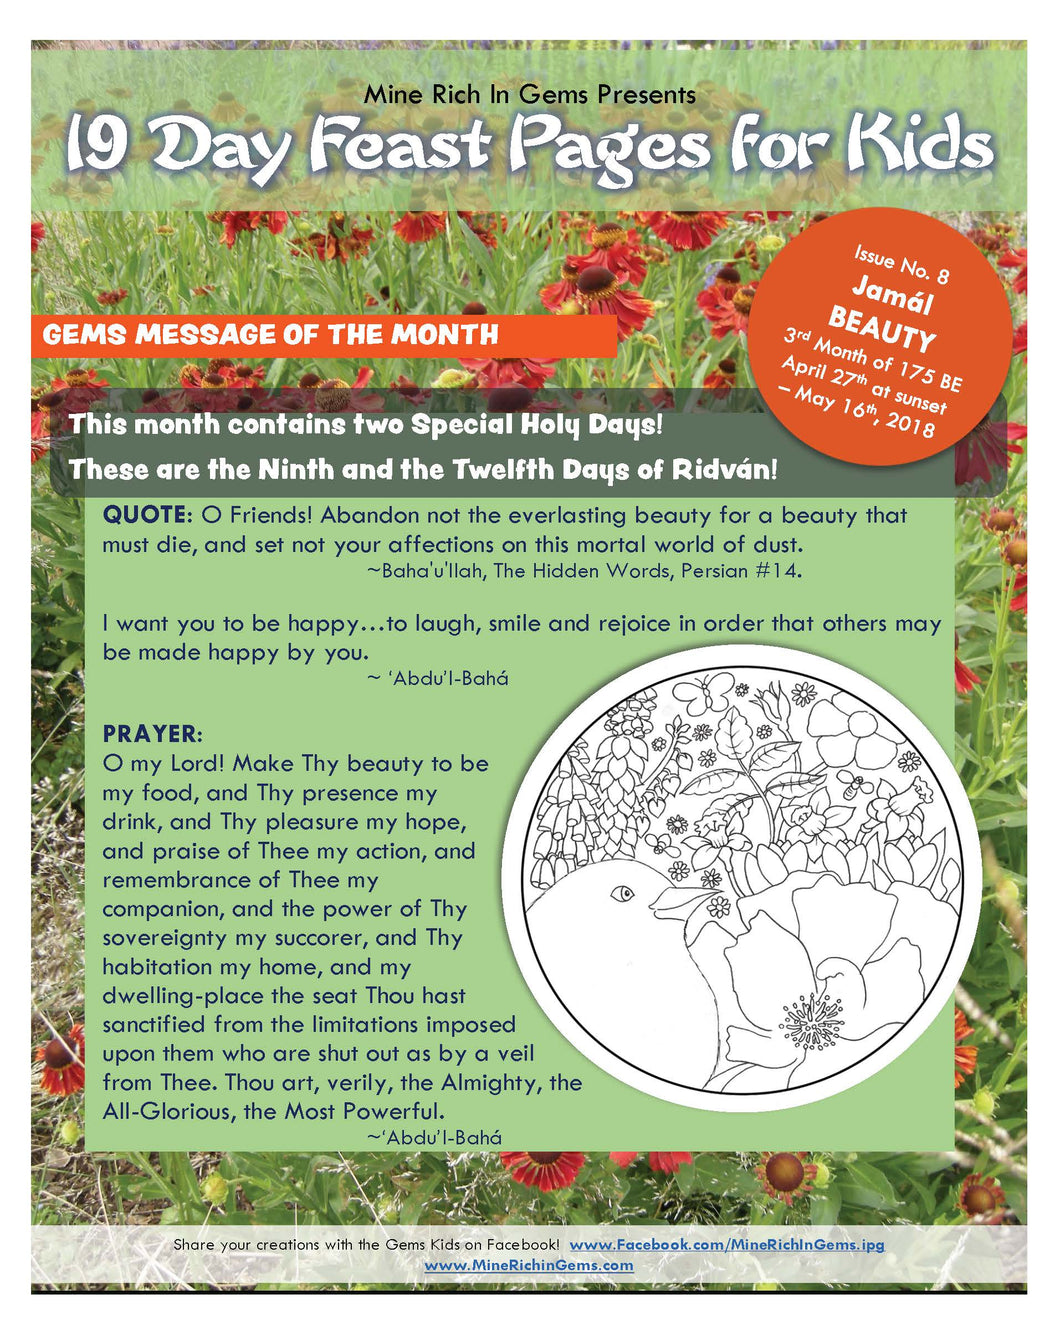 19-Day Feast Pages for Kids! Issue 8 Jamál-Beauty and the Ninth and Twelfth Days of Ridván